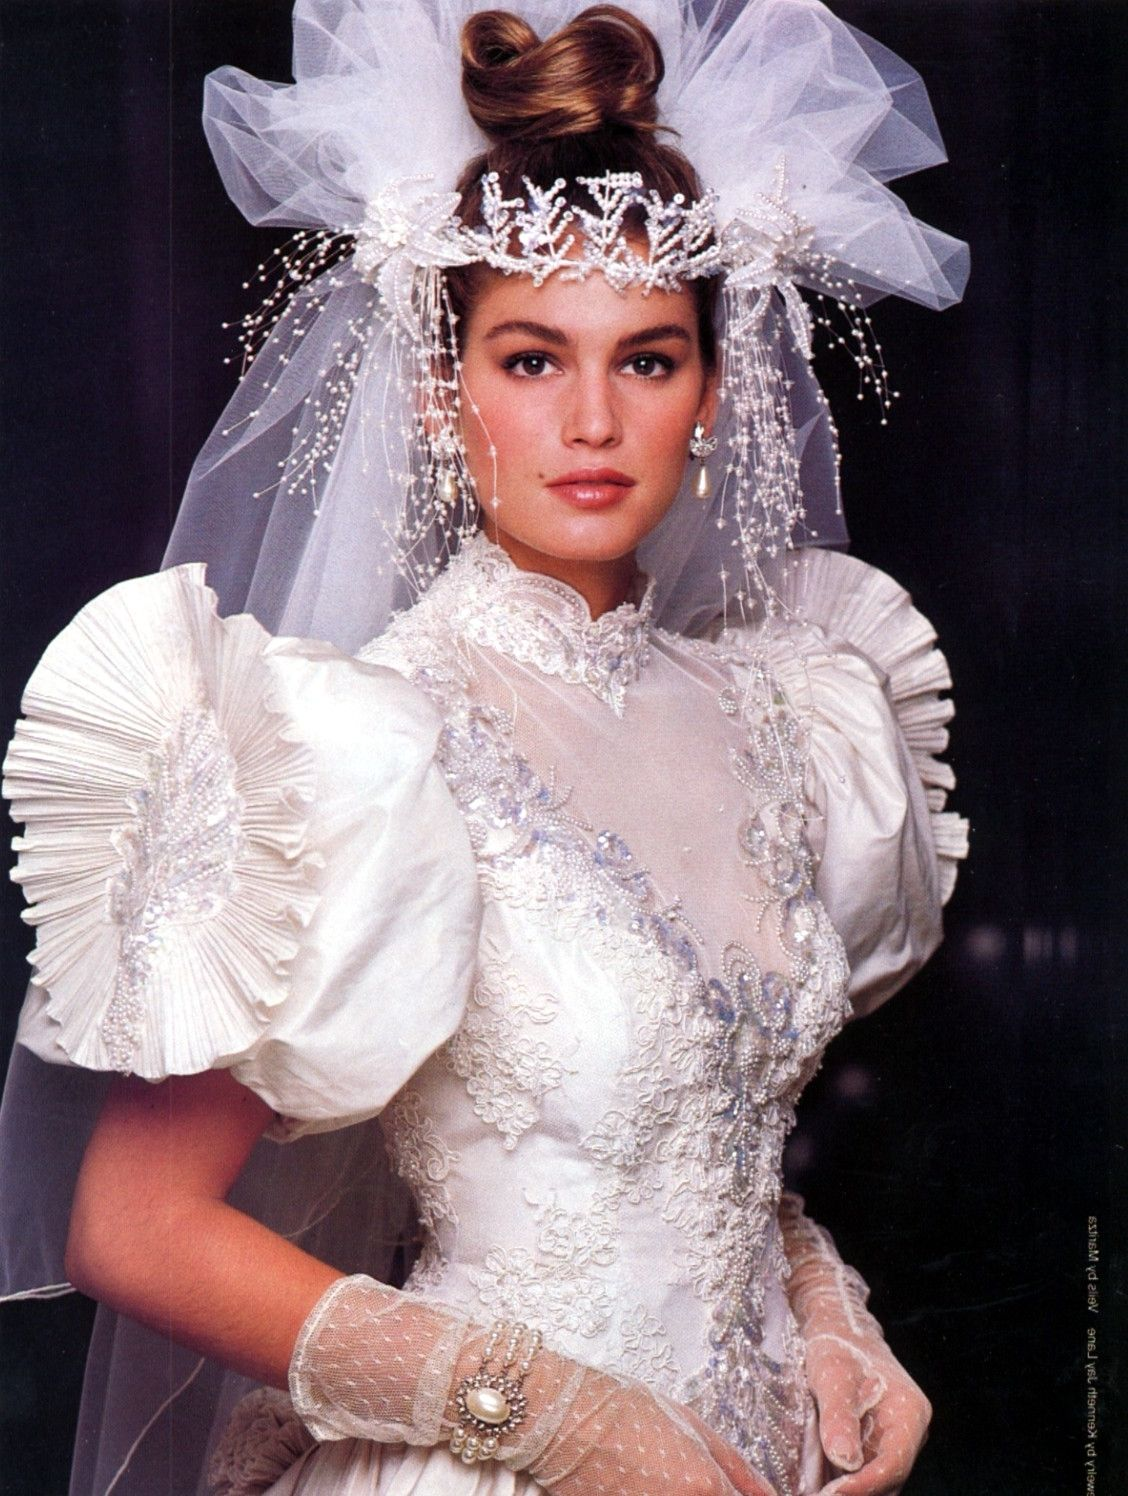 80s wedding dress wedding dress pinterest wedding dress 80s wedding dress junglespirit Gallery